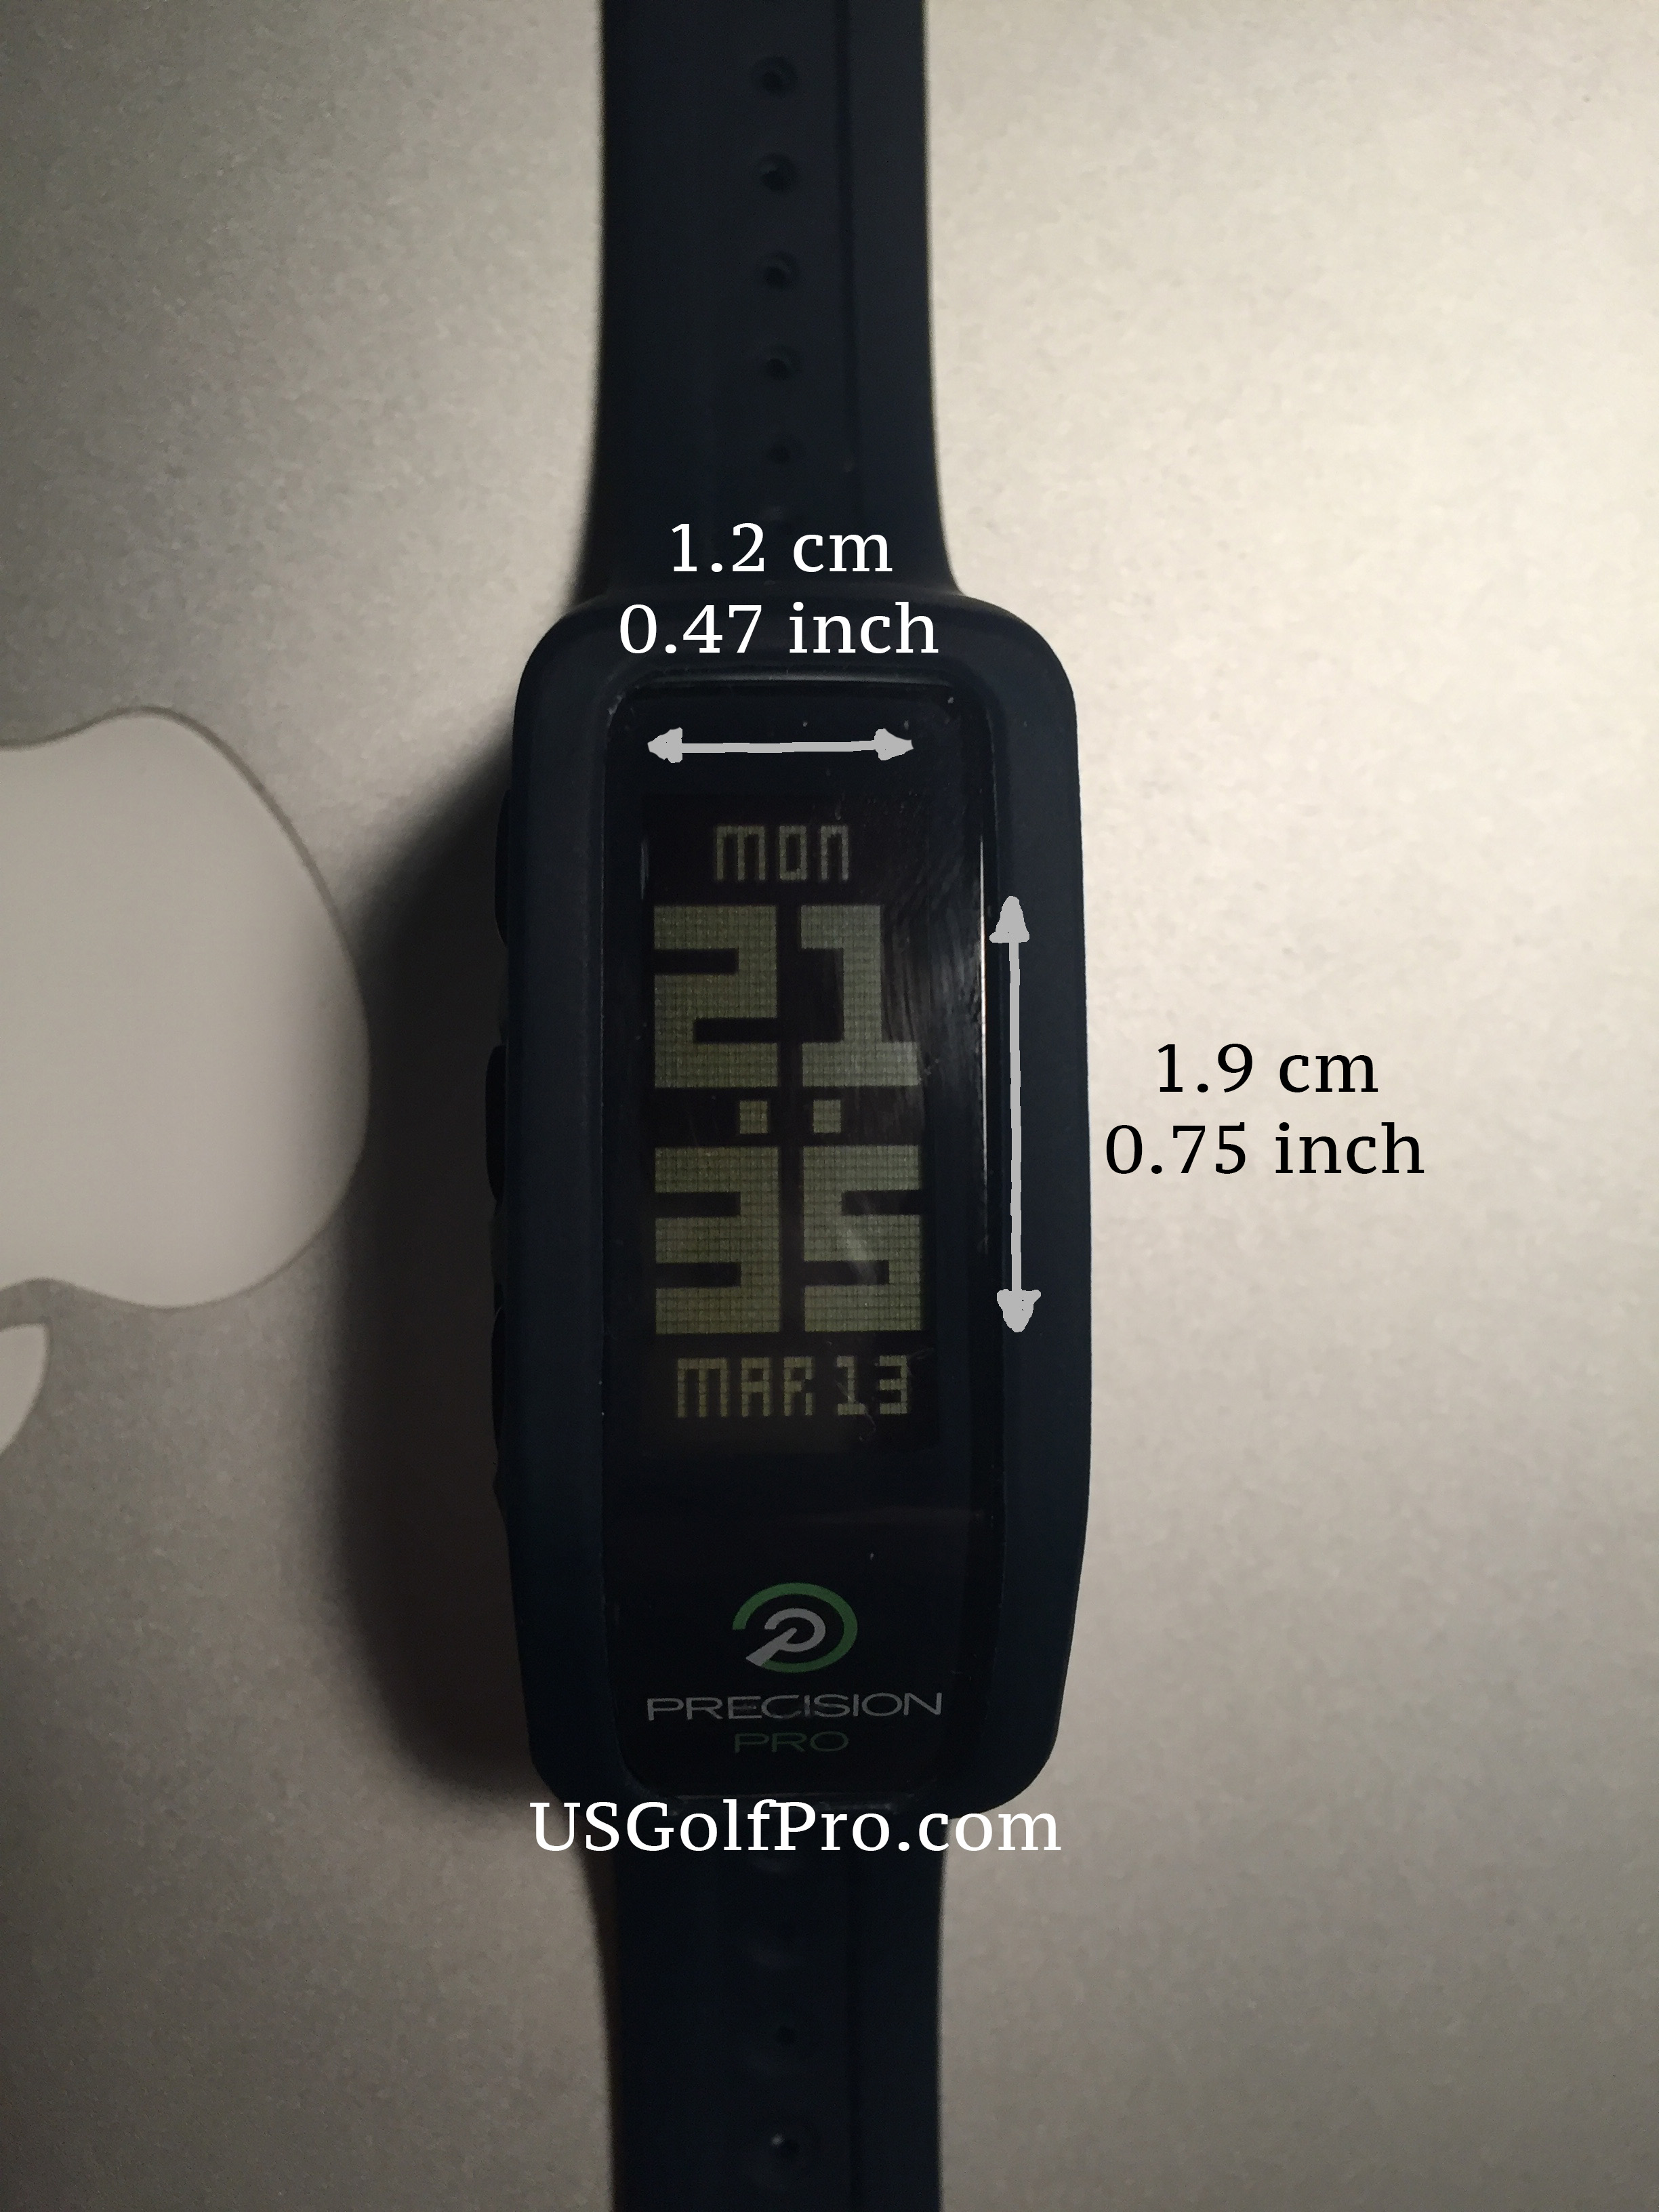 Precision Pro Golf GPS Band - dimension of display